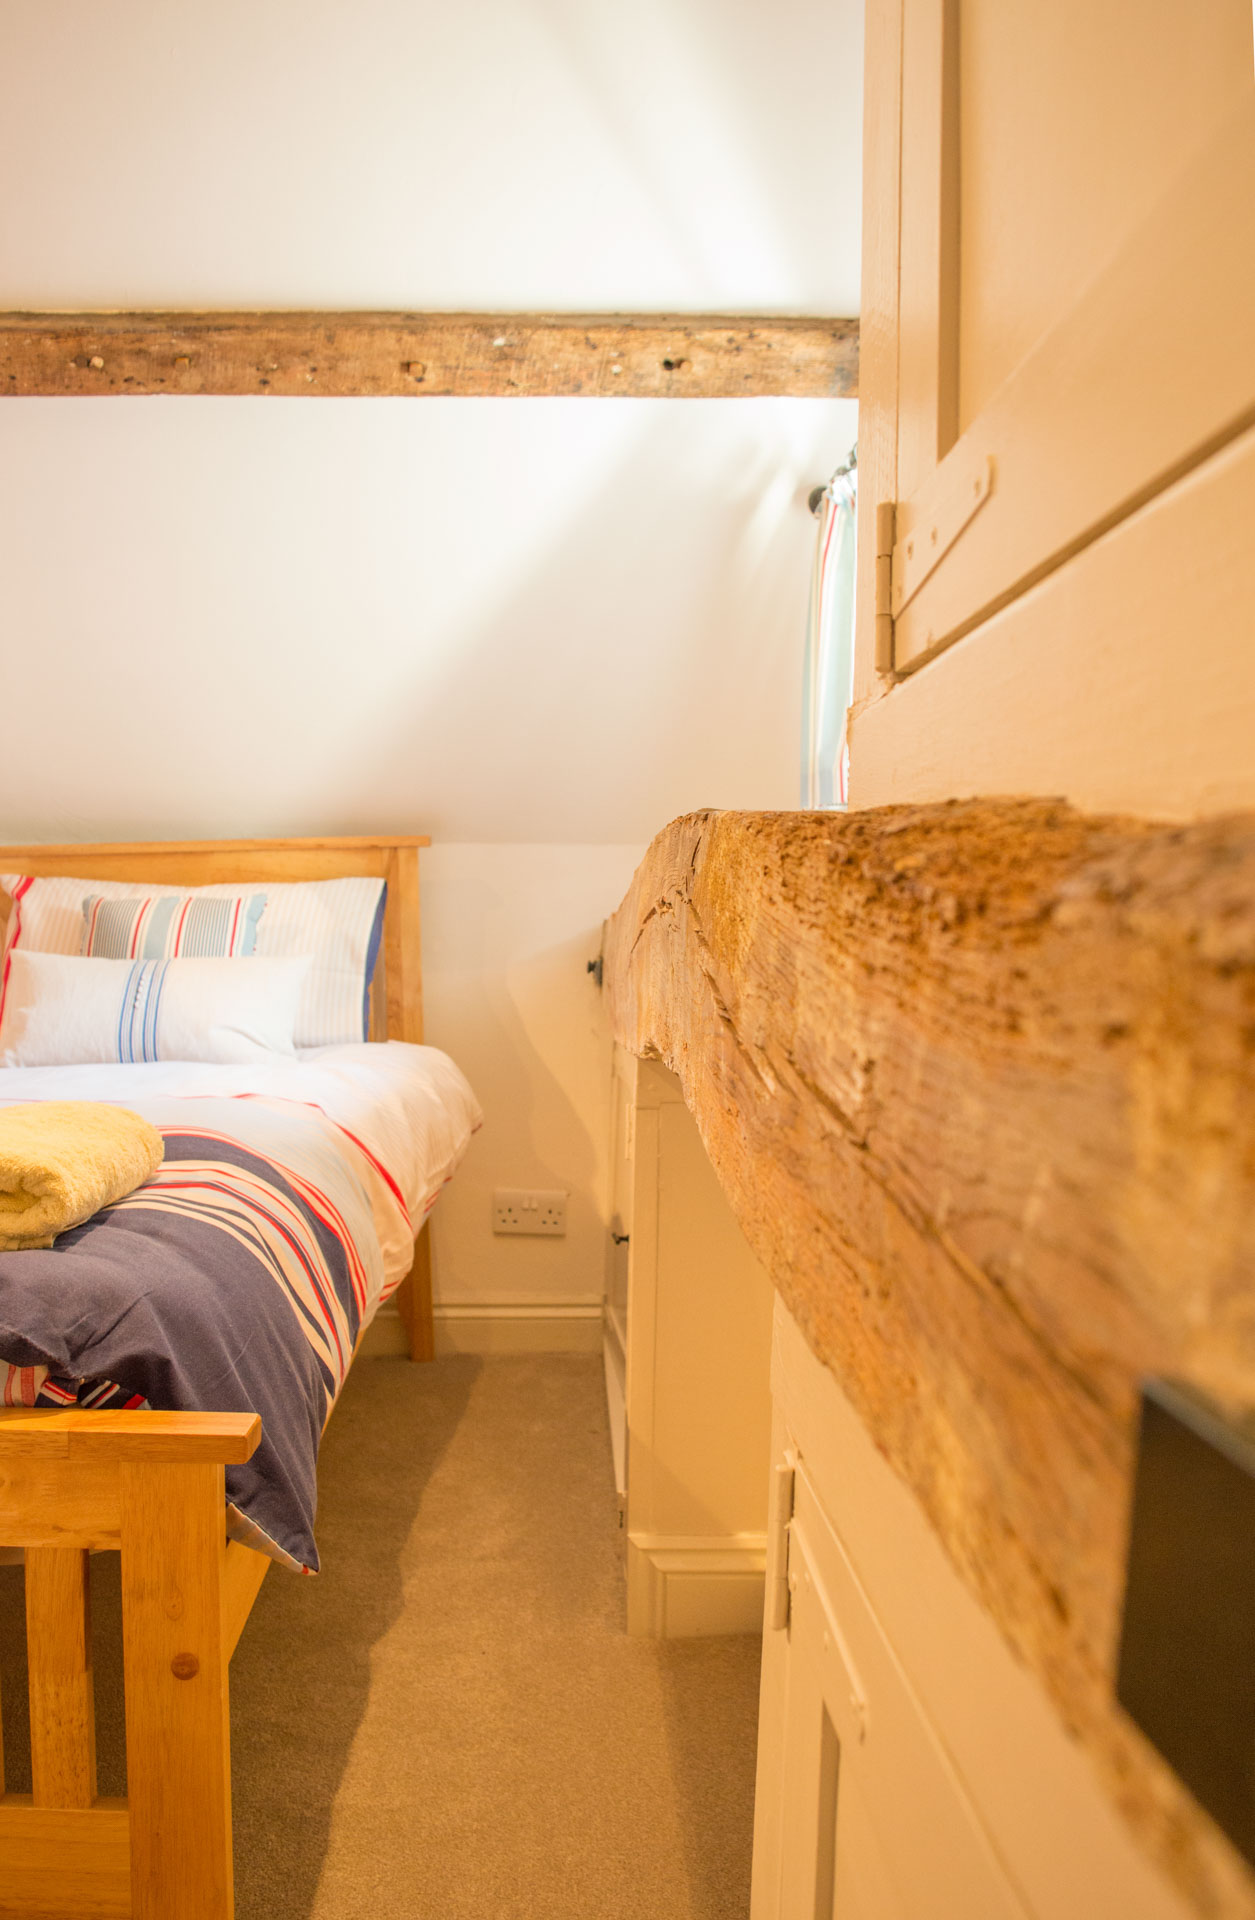 8-guests holiday rental in the town centre of Holt.